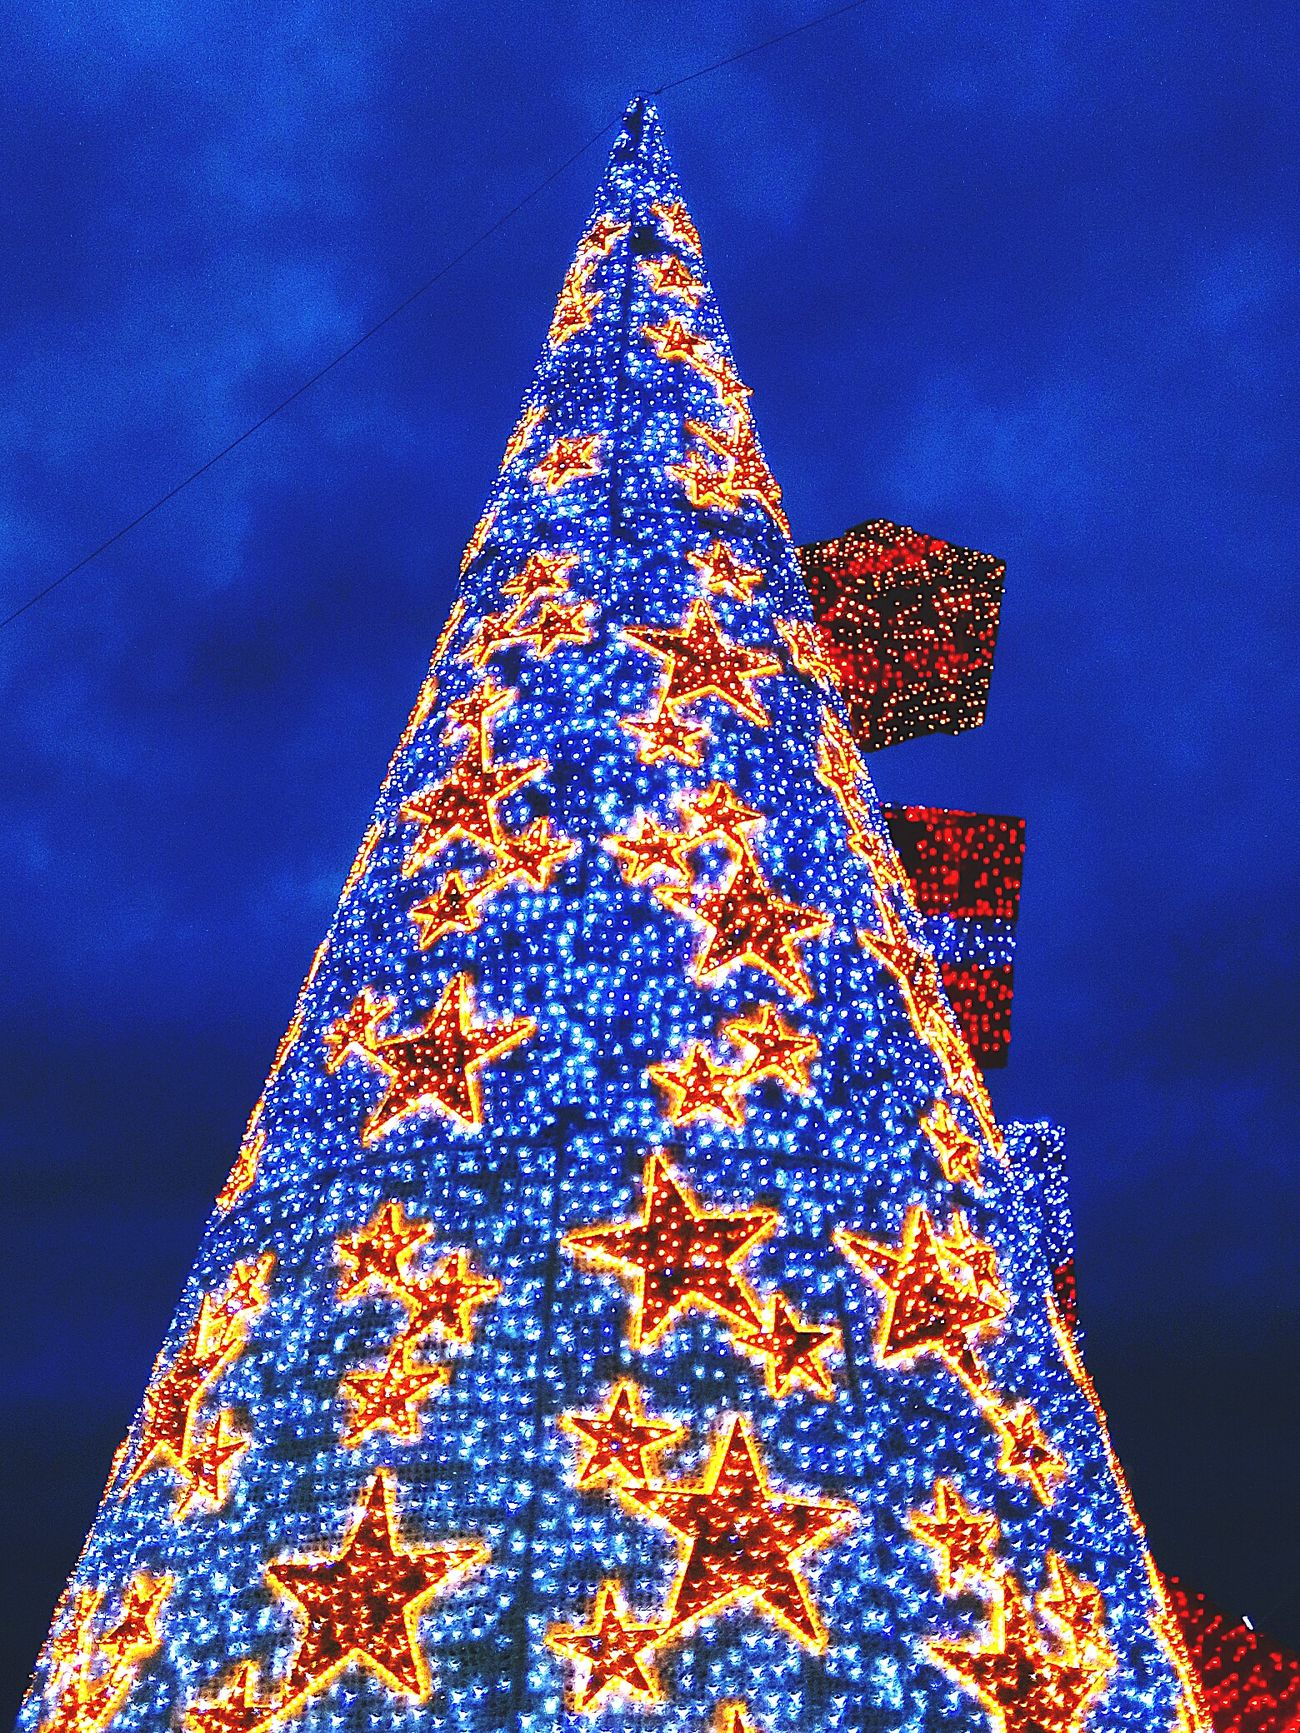 Star Shape Christmas Tree Christmas Christmas Decoration Celebration Sky Tradition Night Christmas Ornament No People Côte D'Azur French Riviera France Scenics St Raphael Blue Christmas Lights Christmas Decorations Christmas Around The World